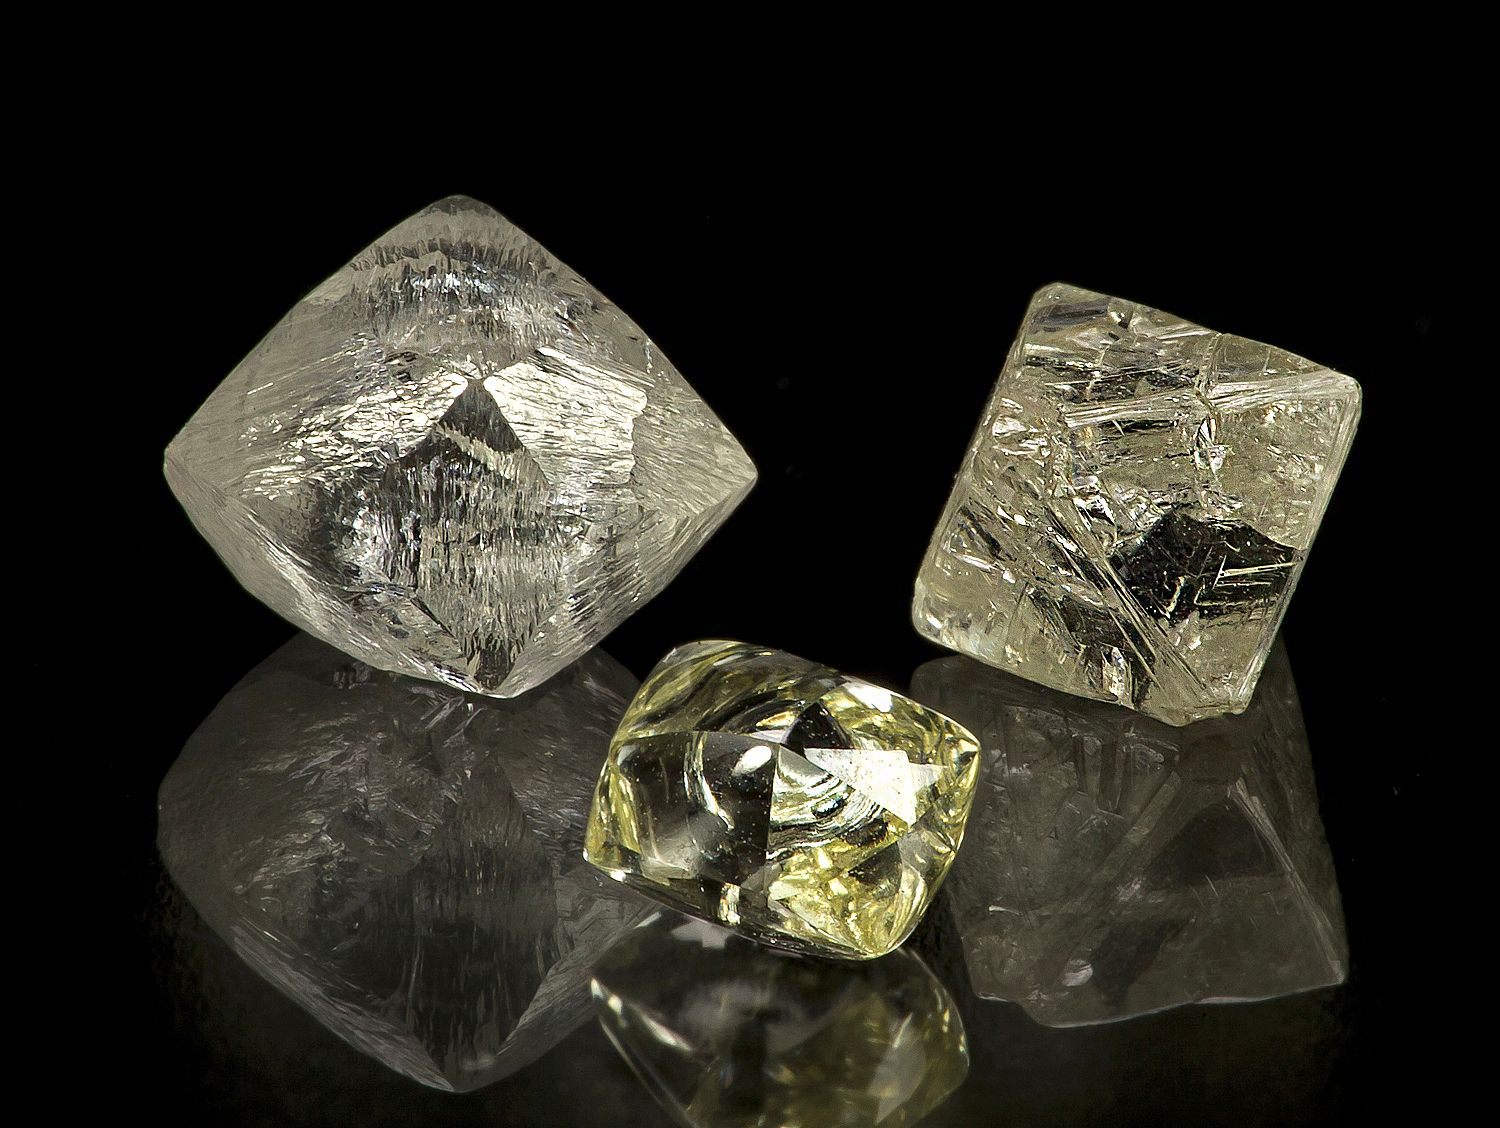 Wonder what is this gem stones are? They are natural rough ...